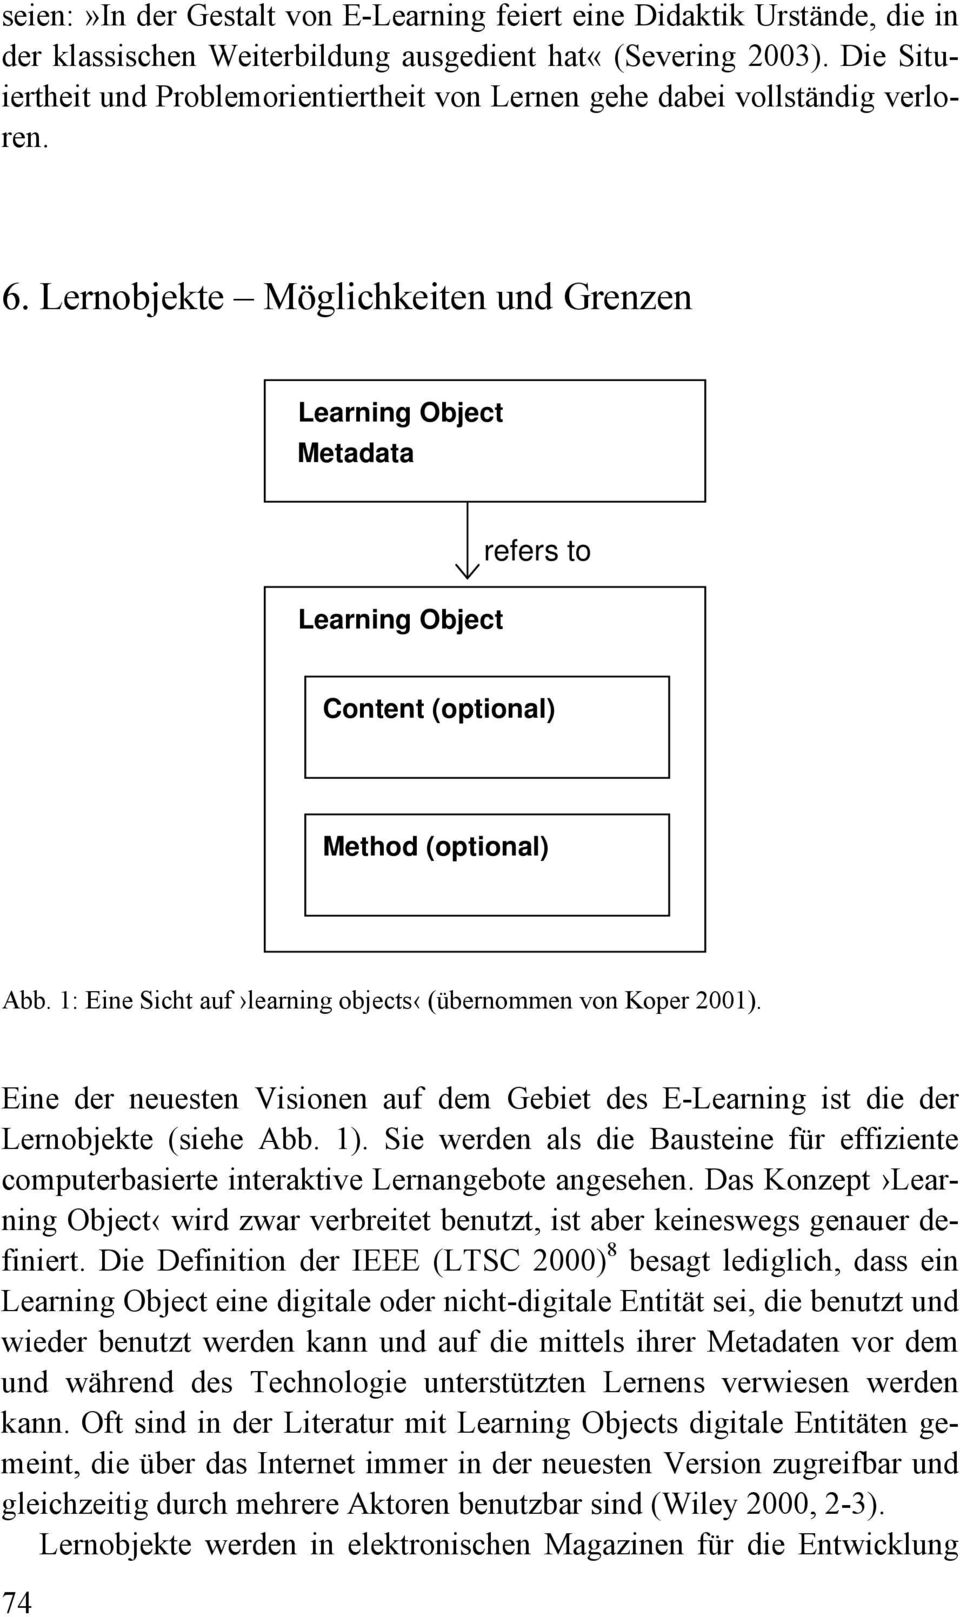 Lernobjekte Möglichkeiten und Grenzen Learning Object Metadata Learning Object refers to Content (optional) Method (optional) Abb. 1: Eine Sicht auf learning objects (übernommen von Koper 2001).